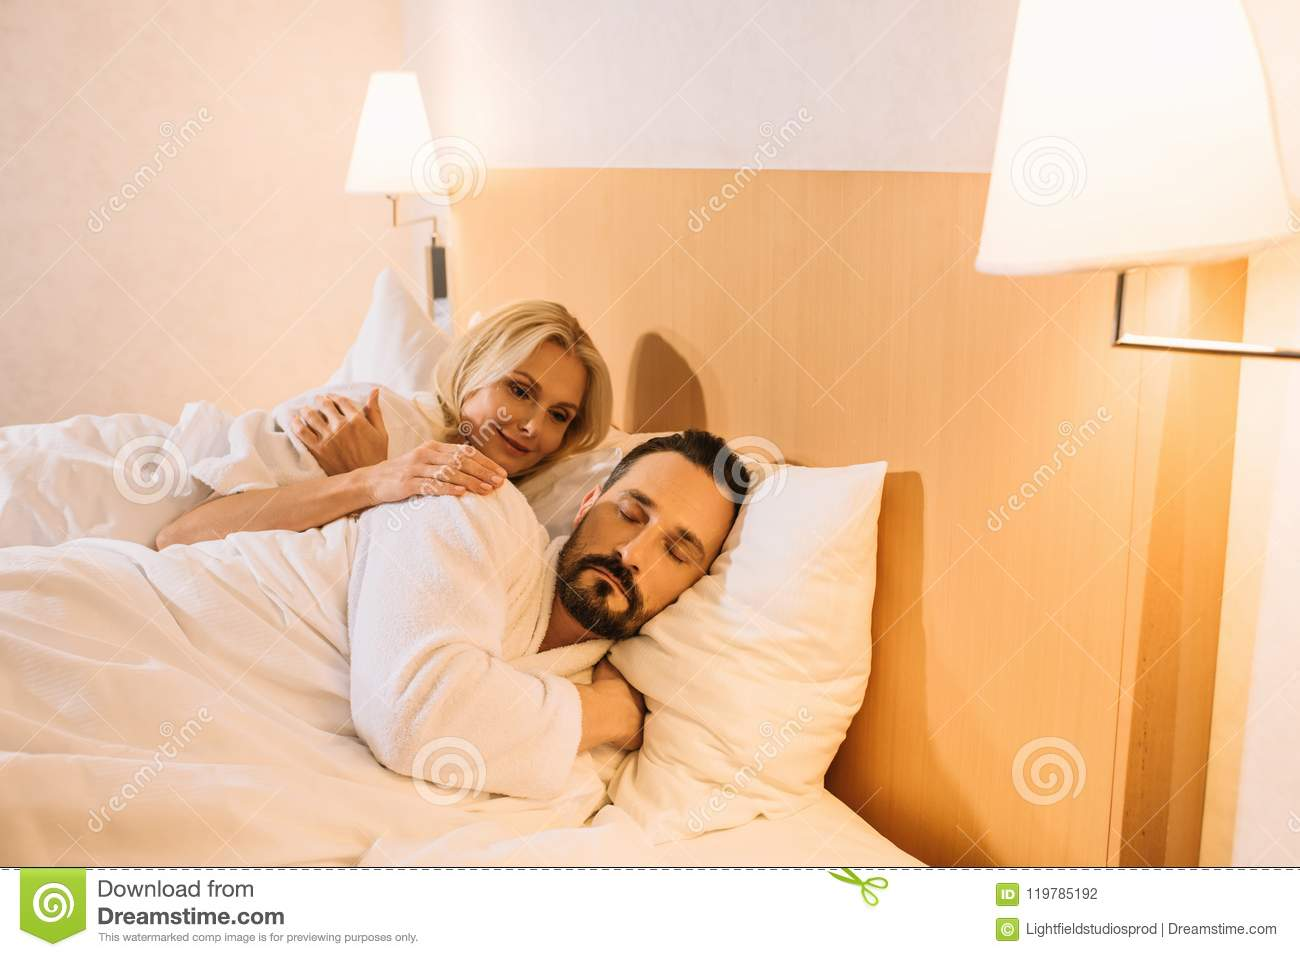 smiling mature woman in bathrobe looking at her husband sleeping